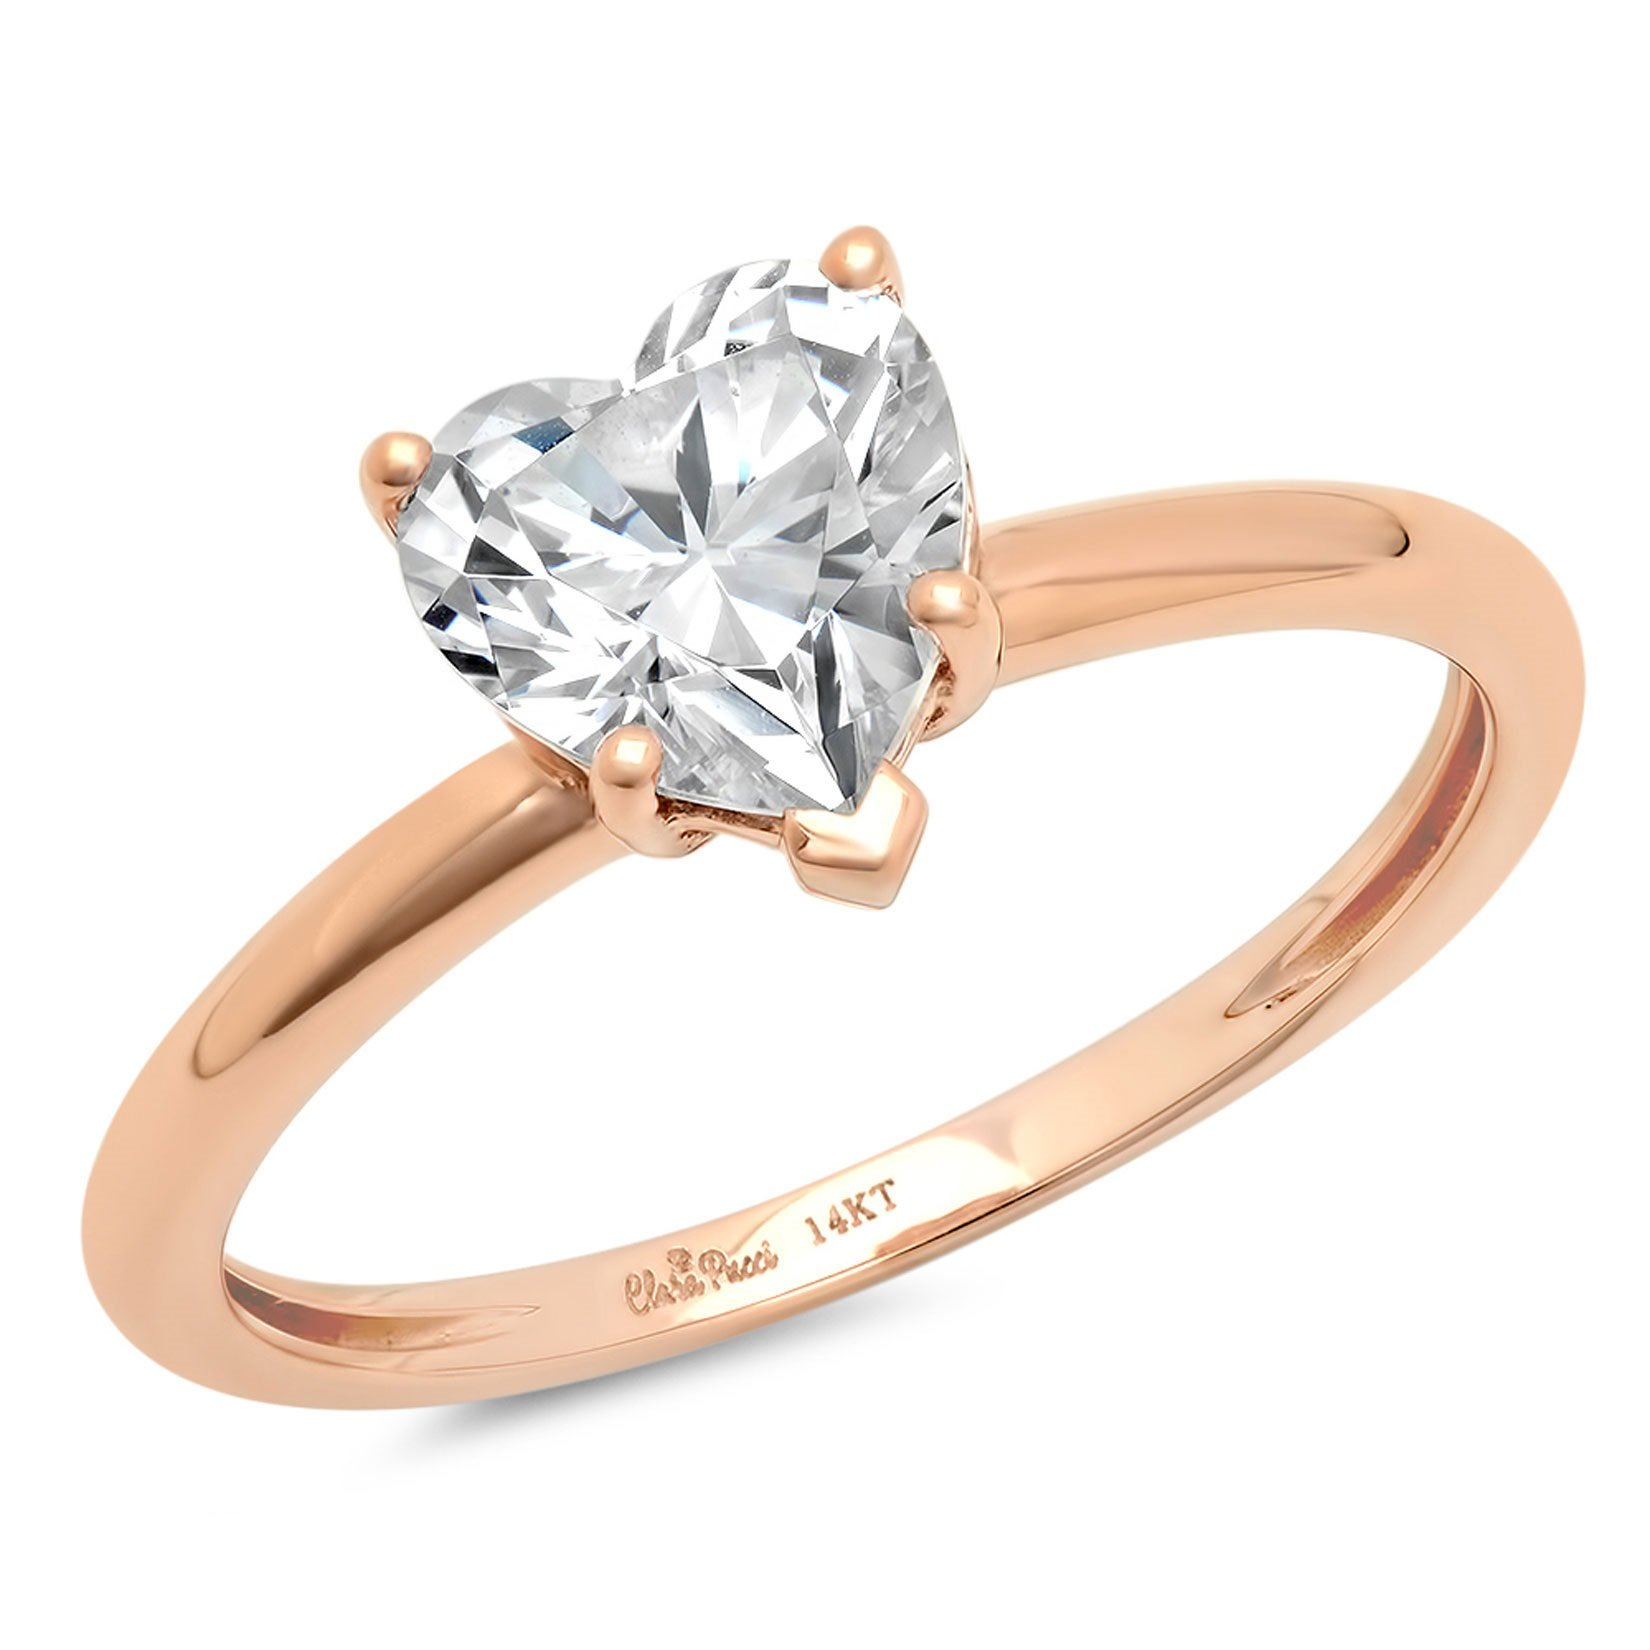 Clara Pucci 2.10 ct Brilliant Heart Cut CZ Designer Solitaire Ring in Solid 14k Rose Gold